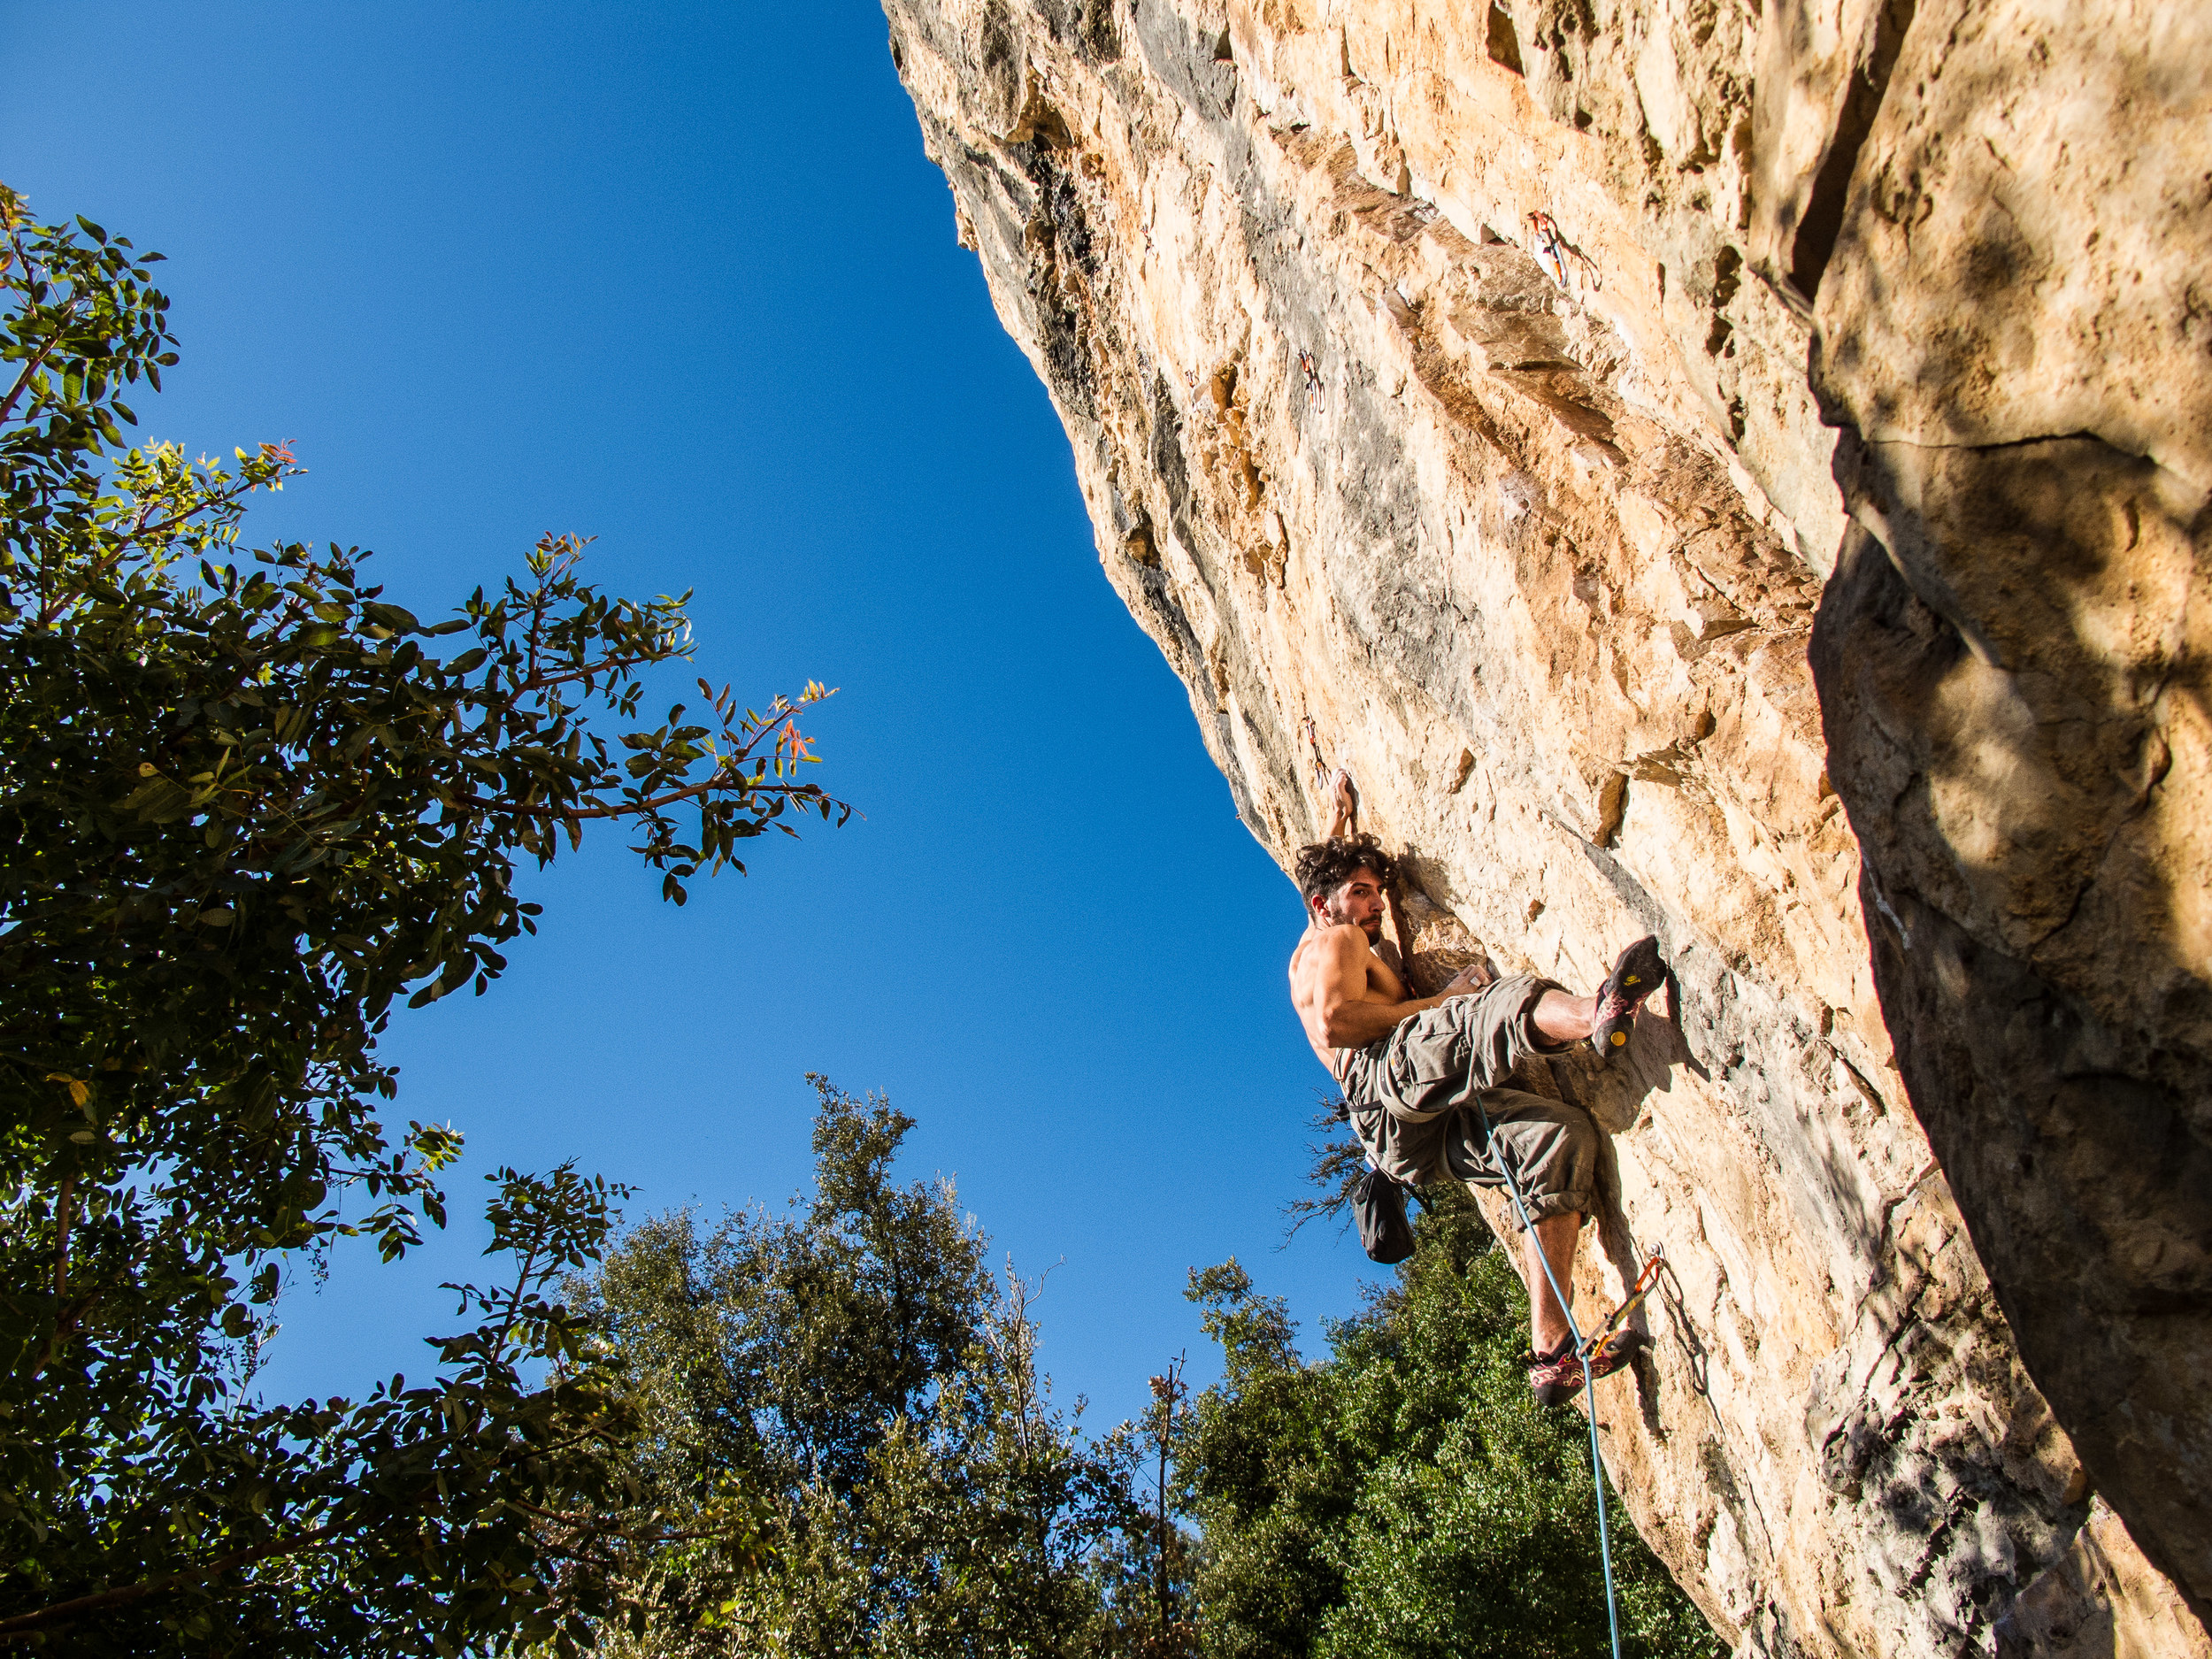 SOCIAL & ORGANIZATIONAL ISSUES OF LIFESTYLE SPORTS — In partnership with USA Climbing, a study of the growth, opportunities, and challenges of a burgeoning lifestyle sport, its governing body, and members.